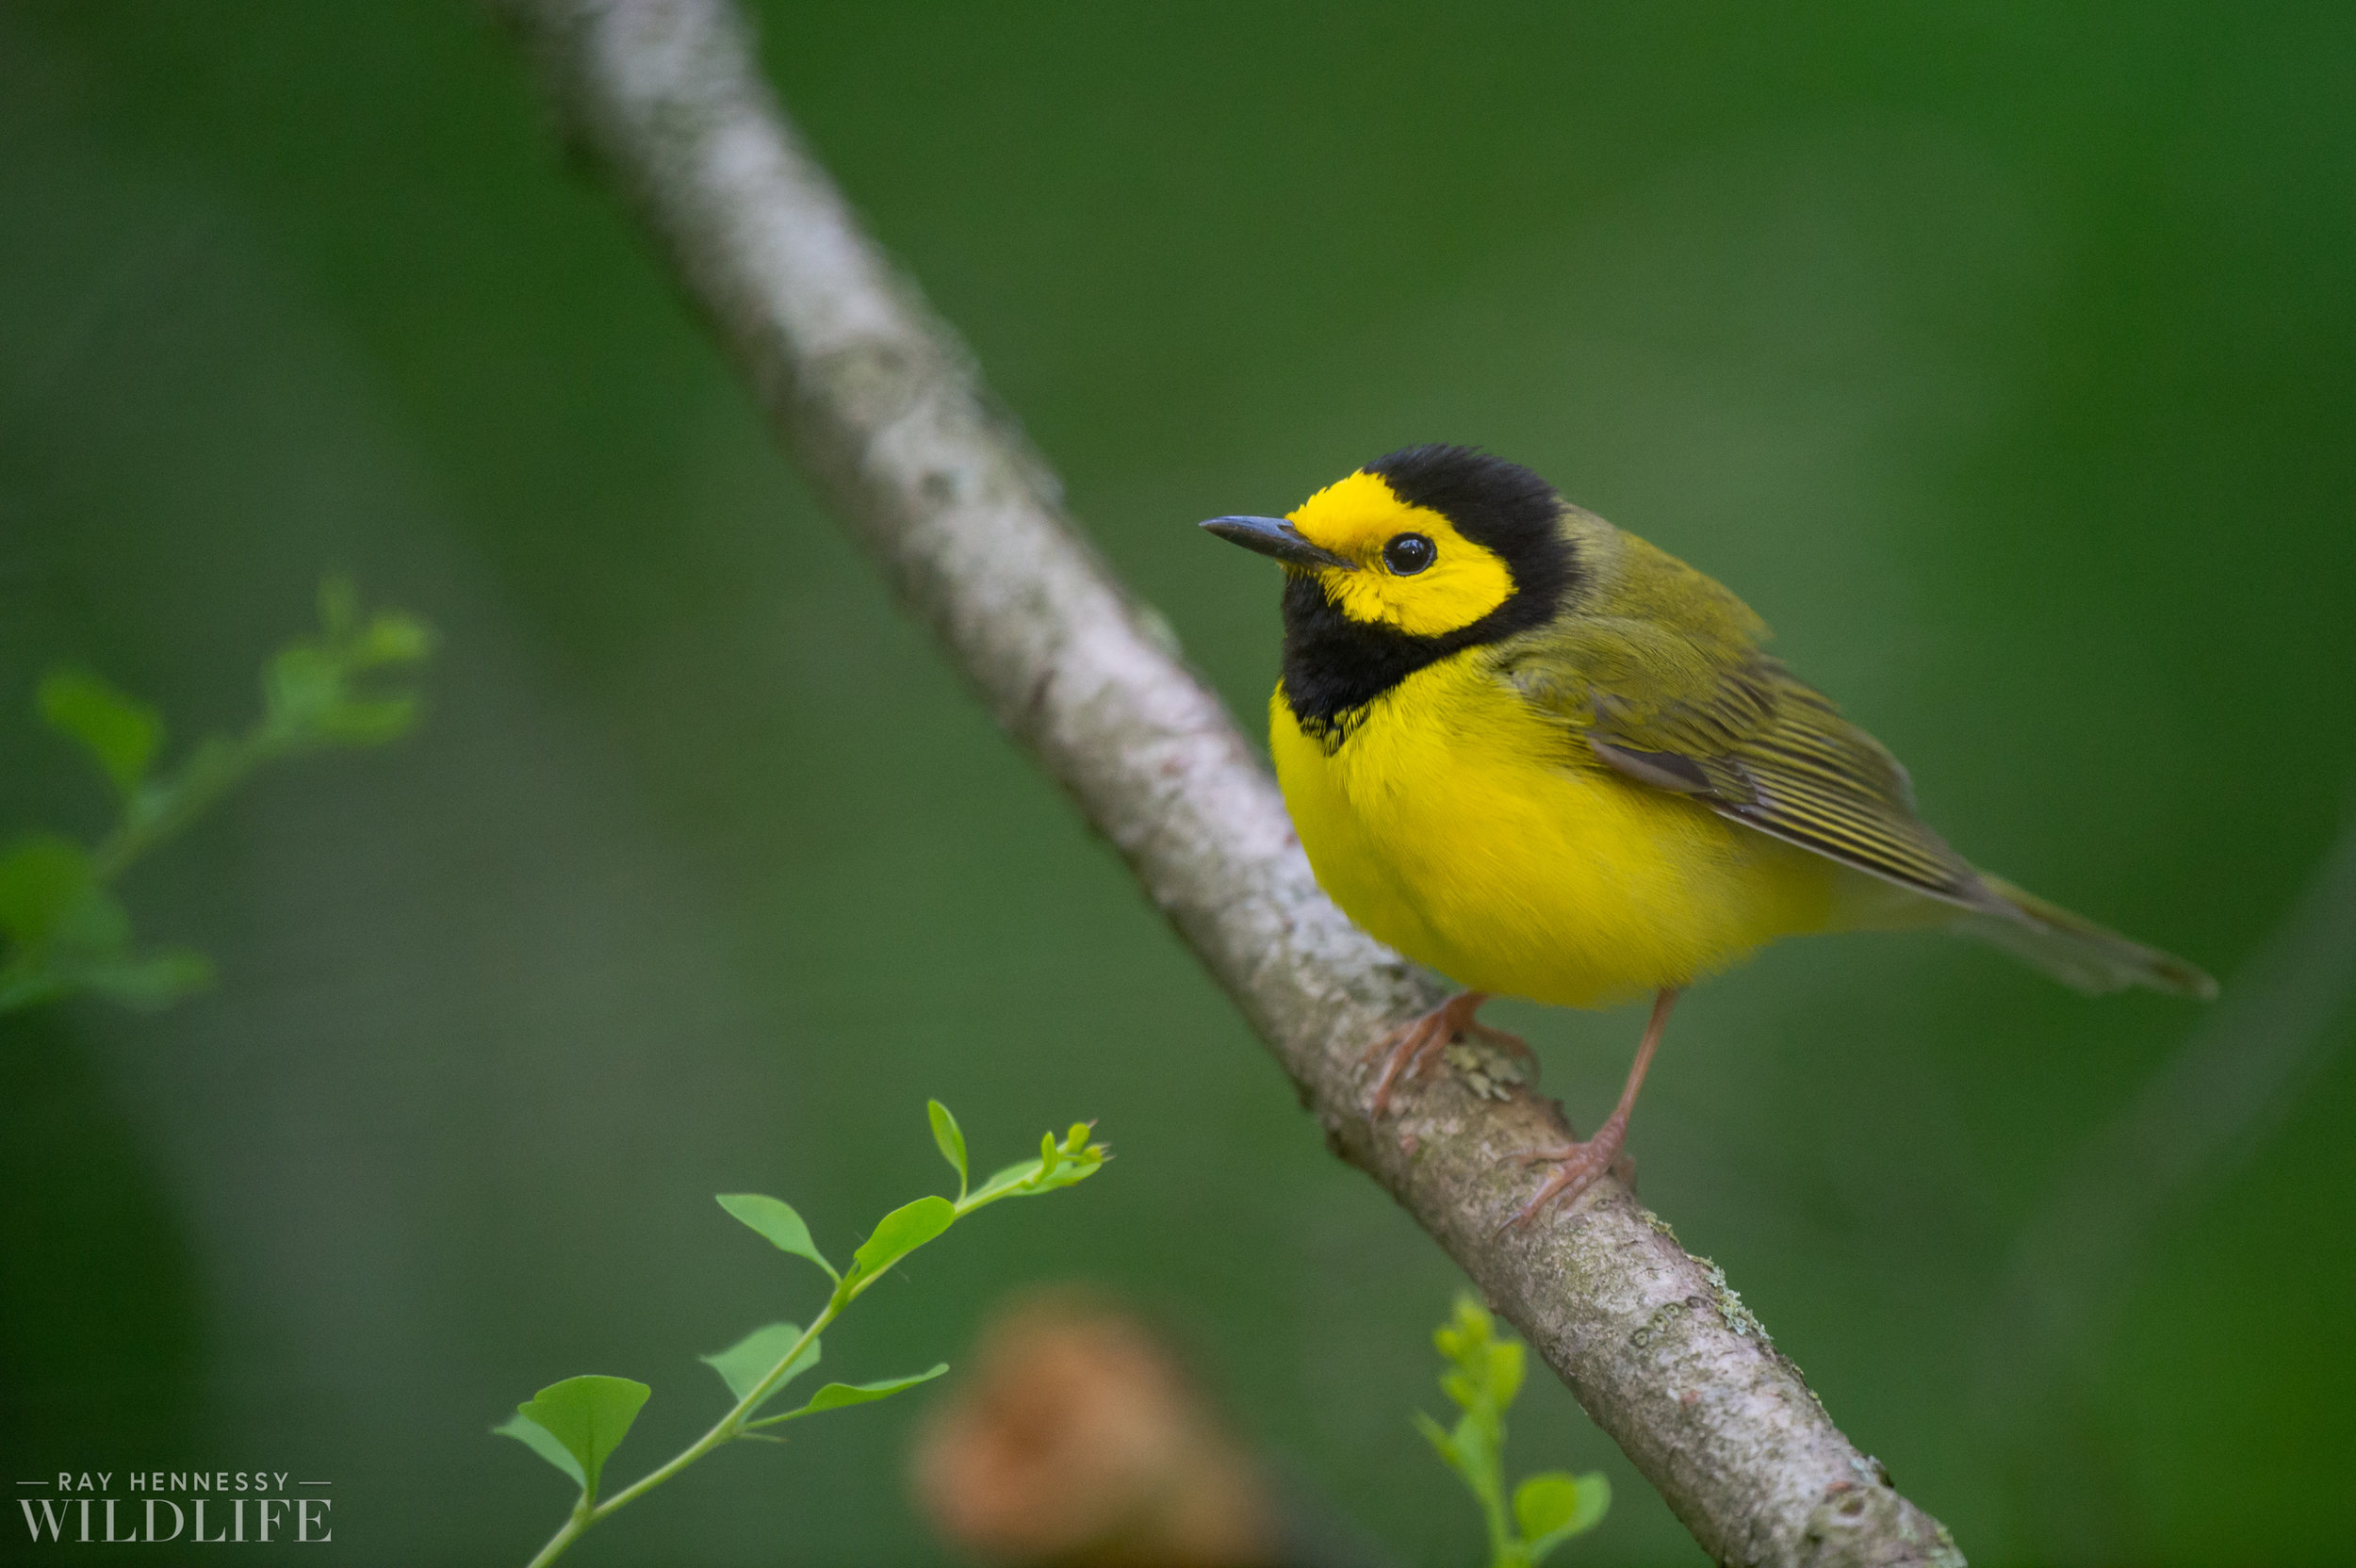 003_nothern-new-jersey-warblers.jpg